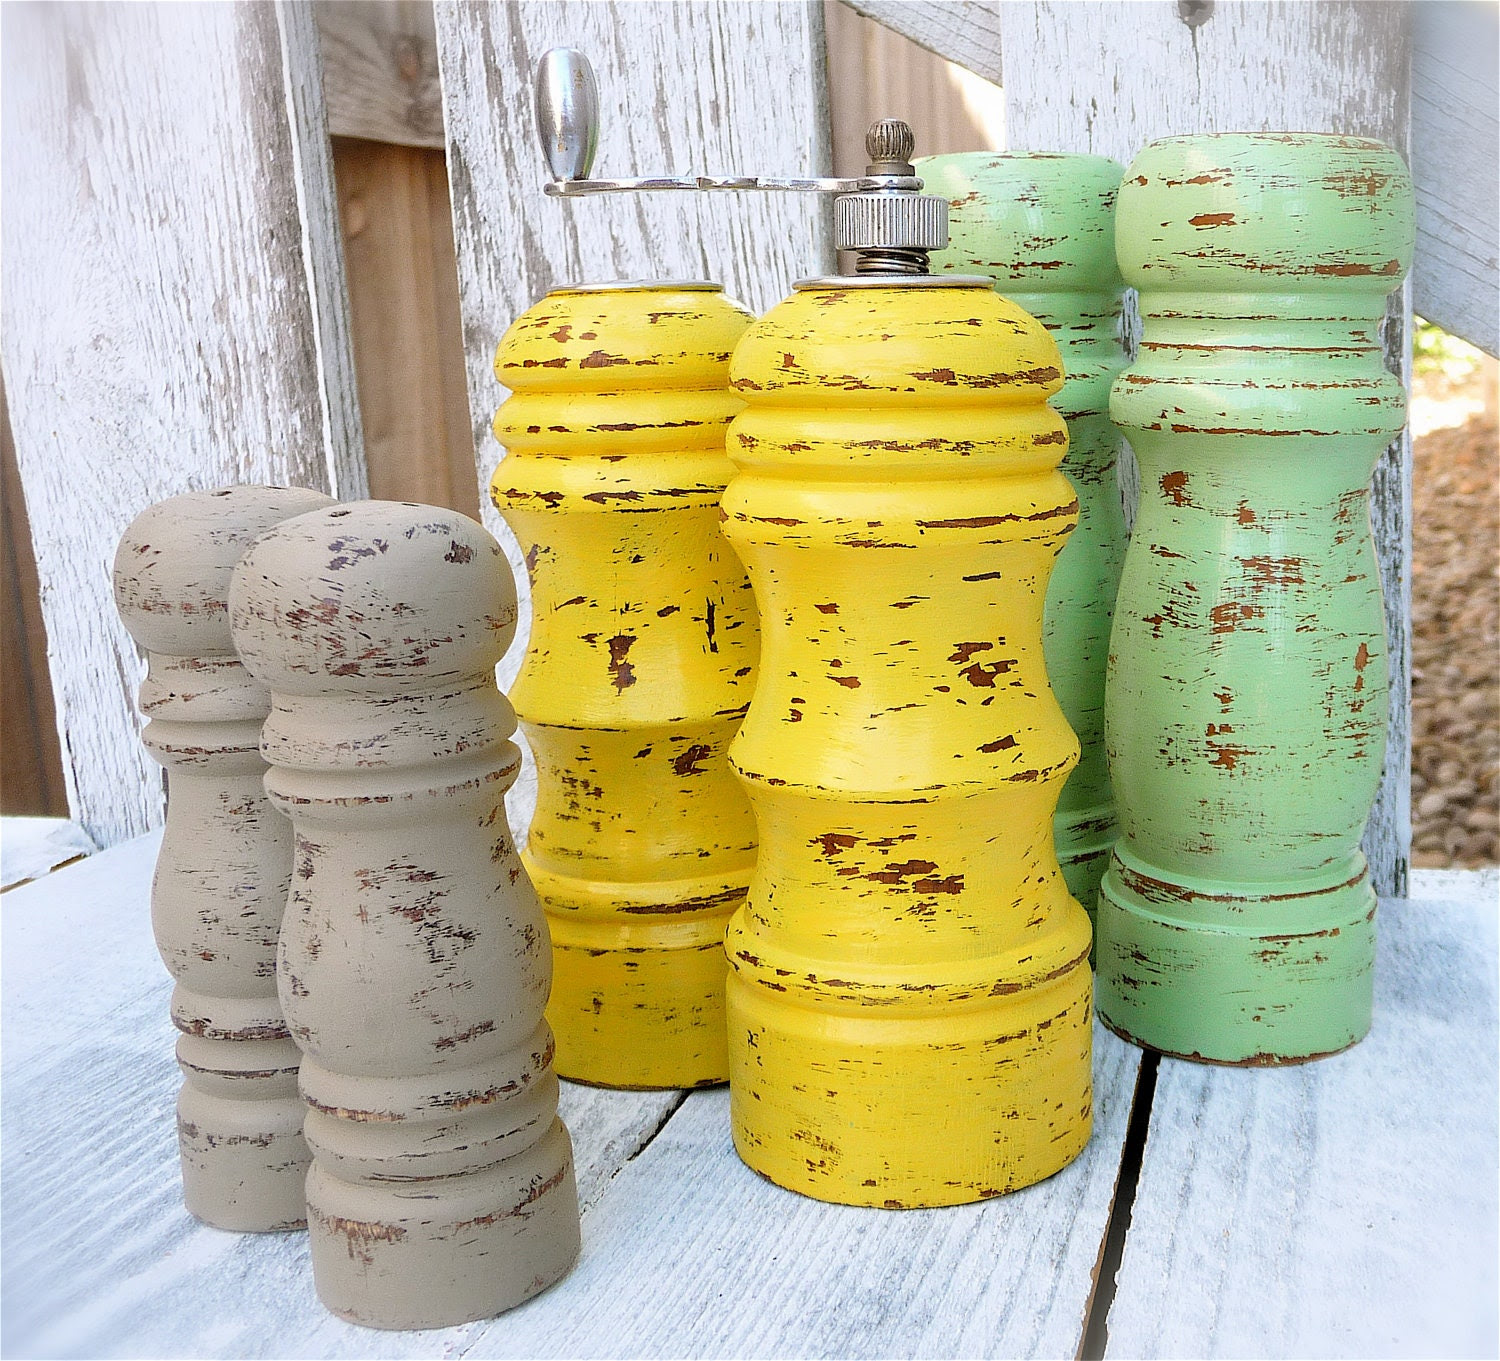 COLORFUL SHABBY CHIC Salt and Pepper Mill Set, Medium Size in Sunny Yellow